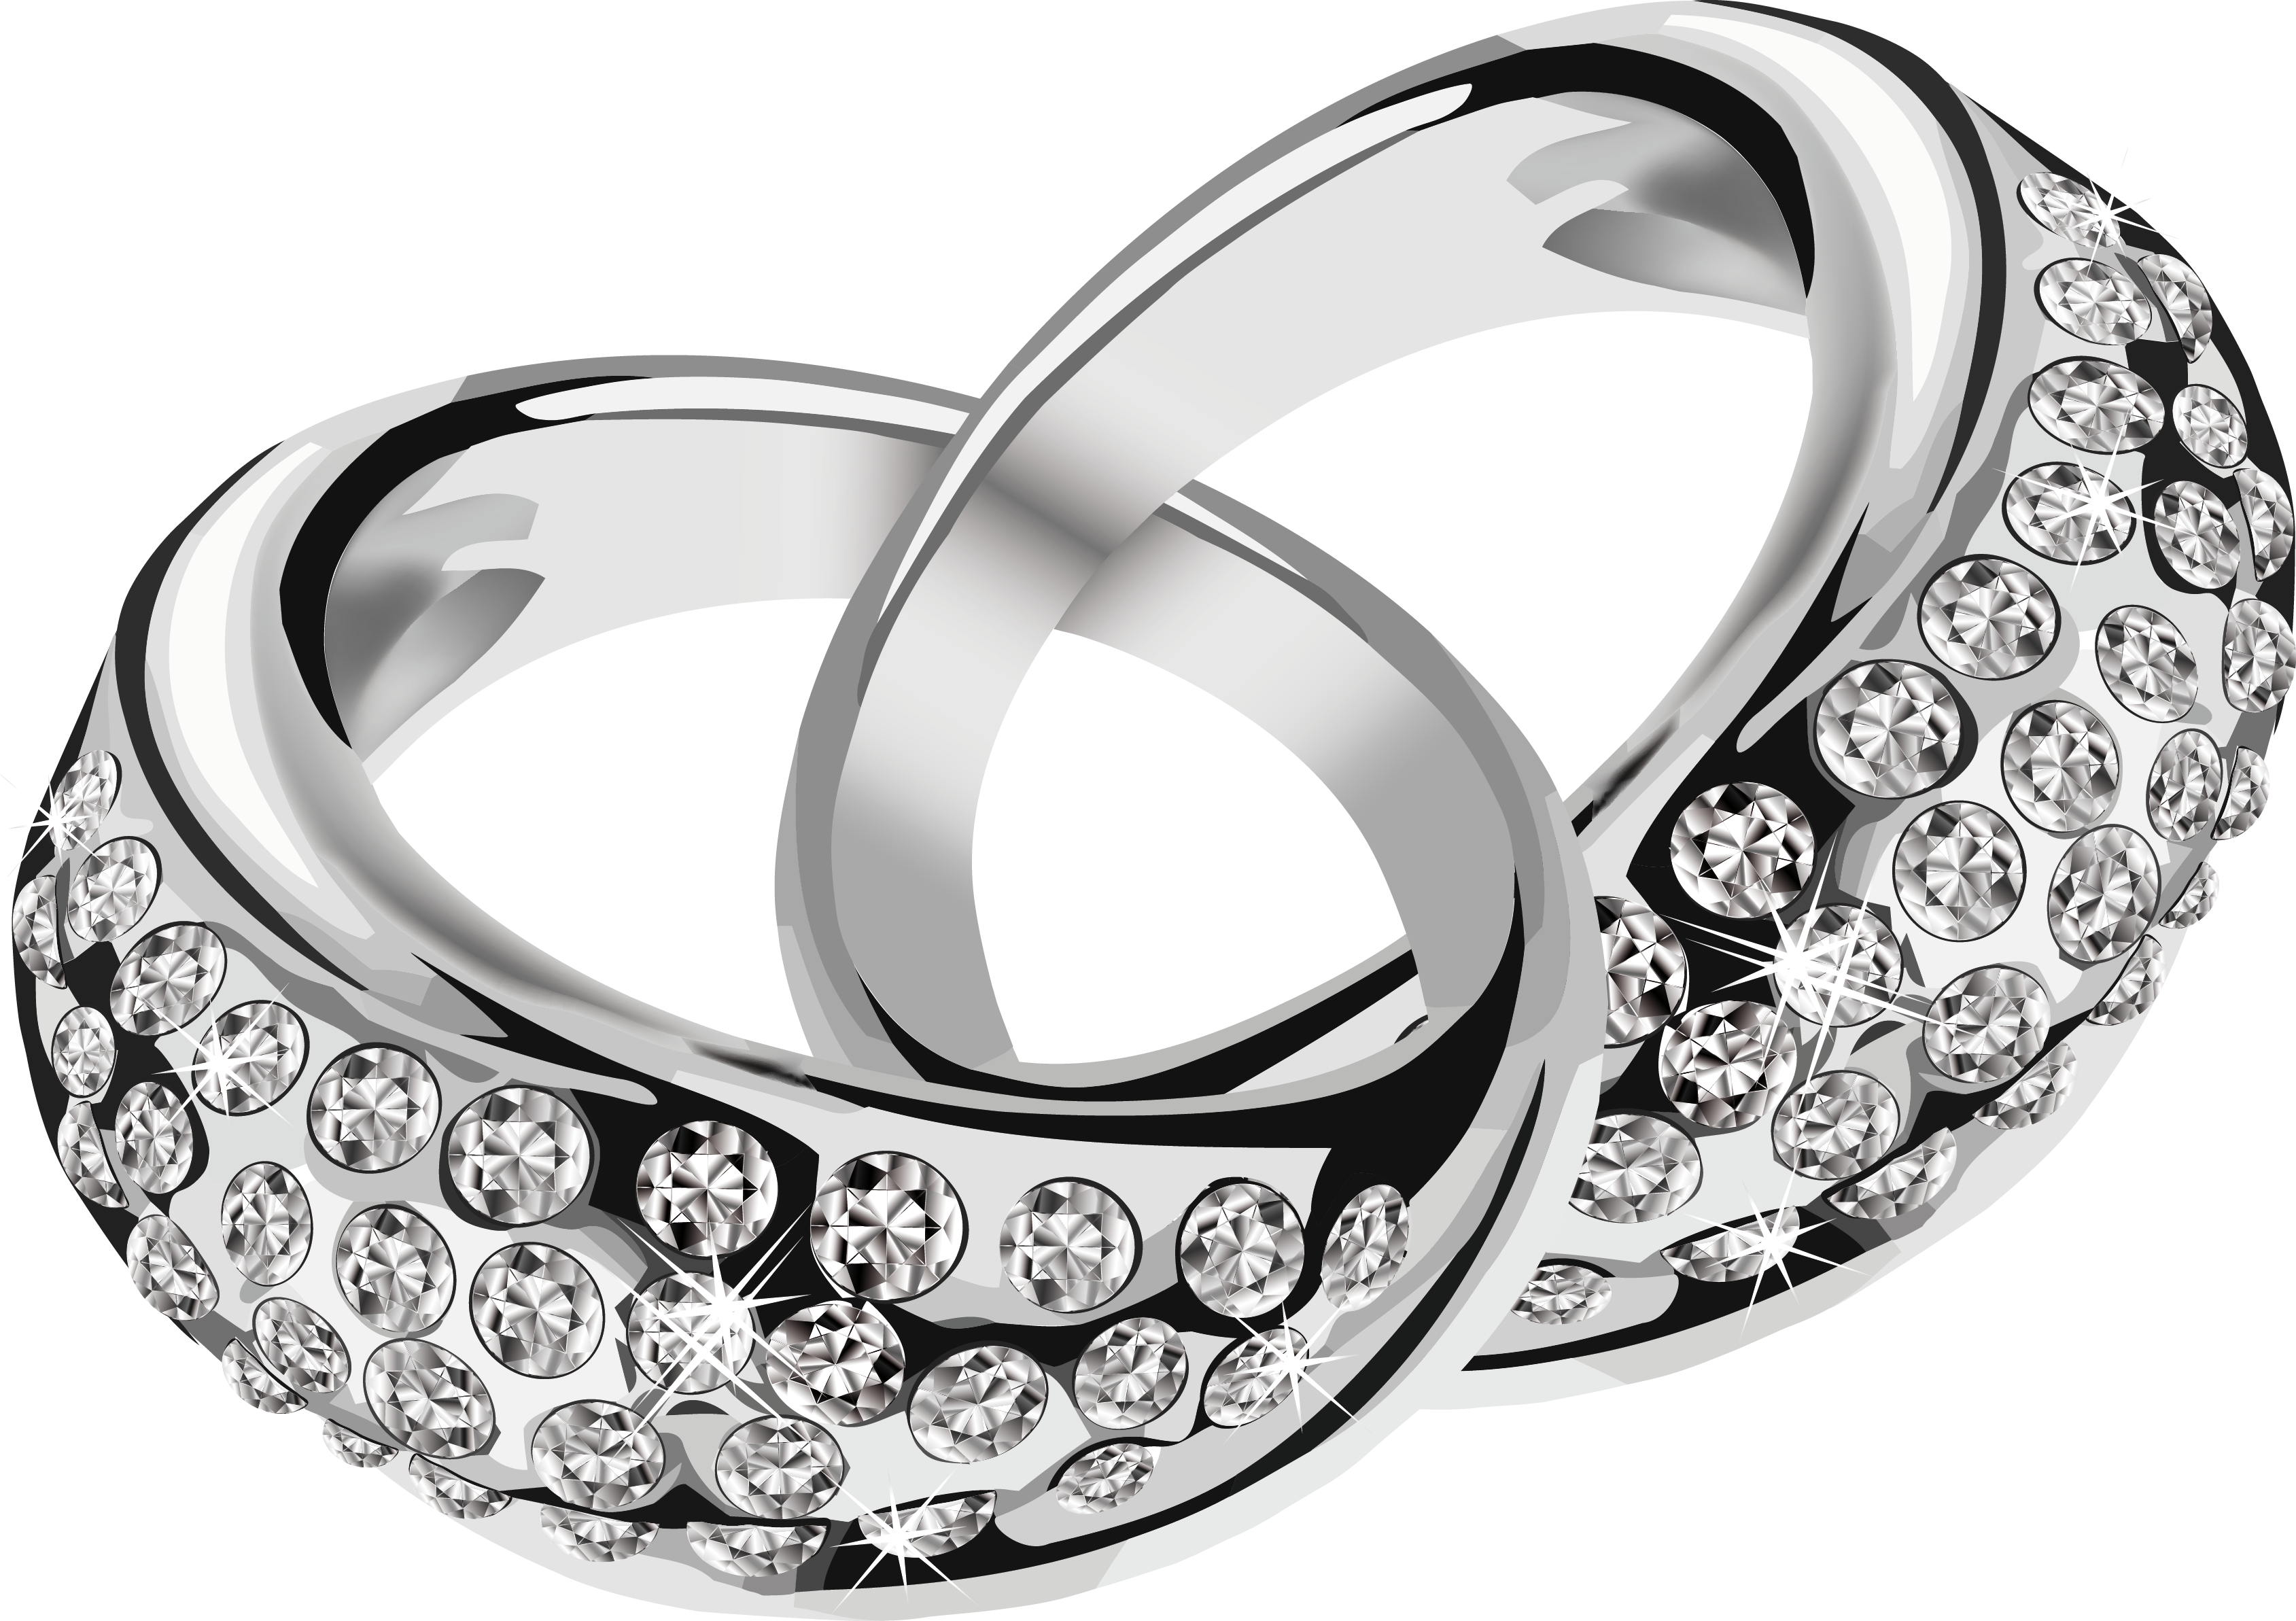 silver rings with diamonds PNG